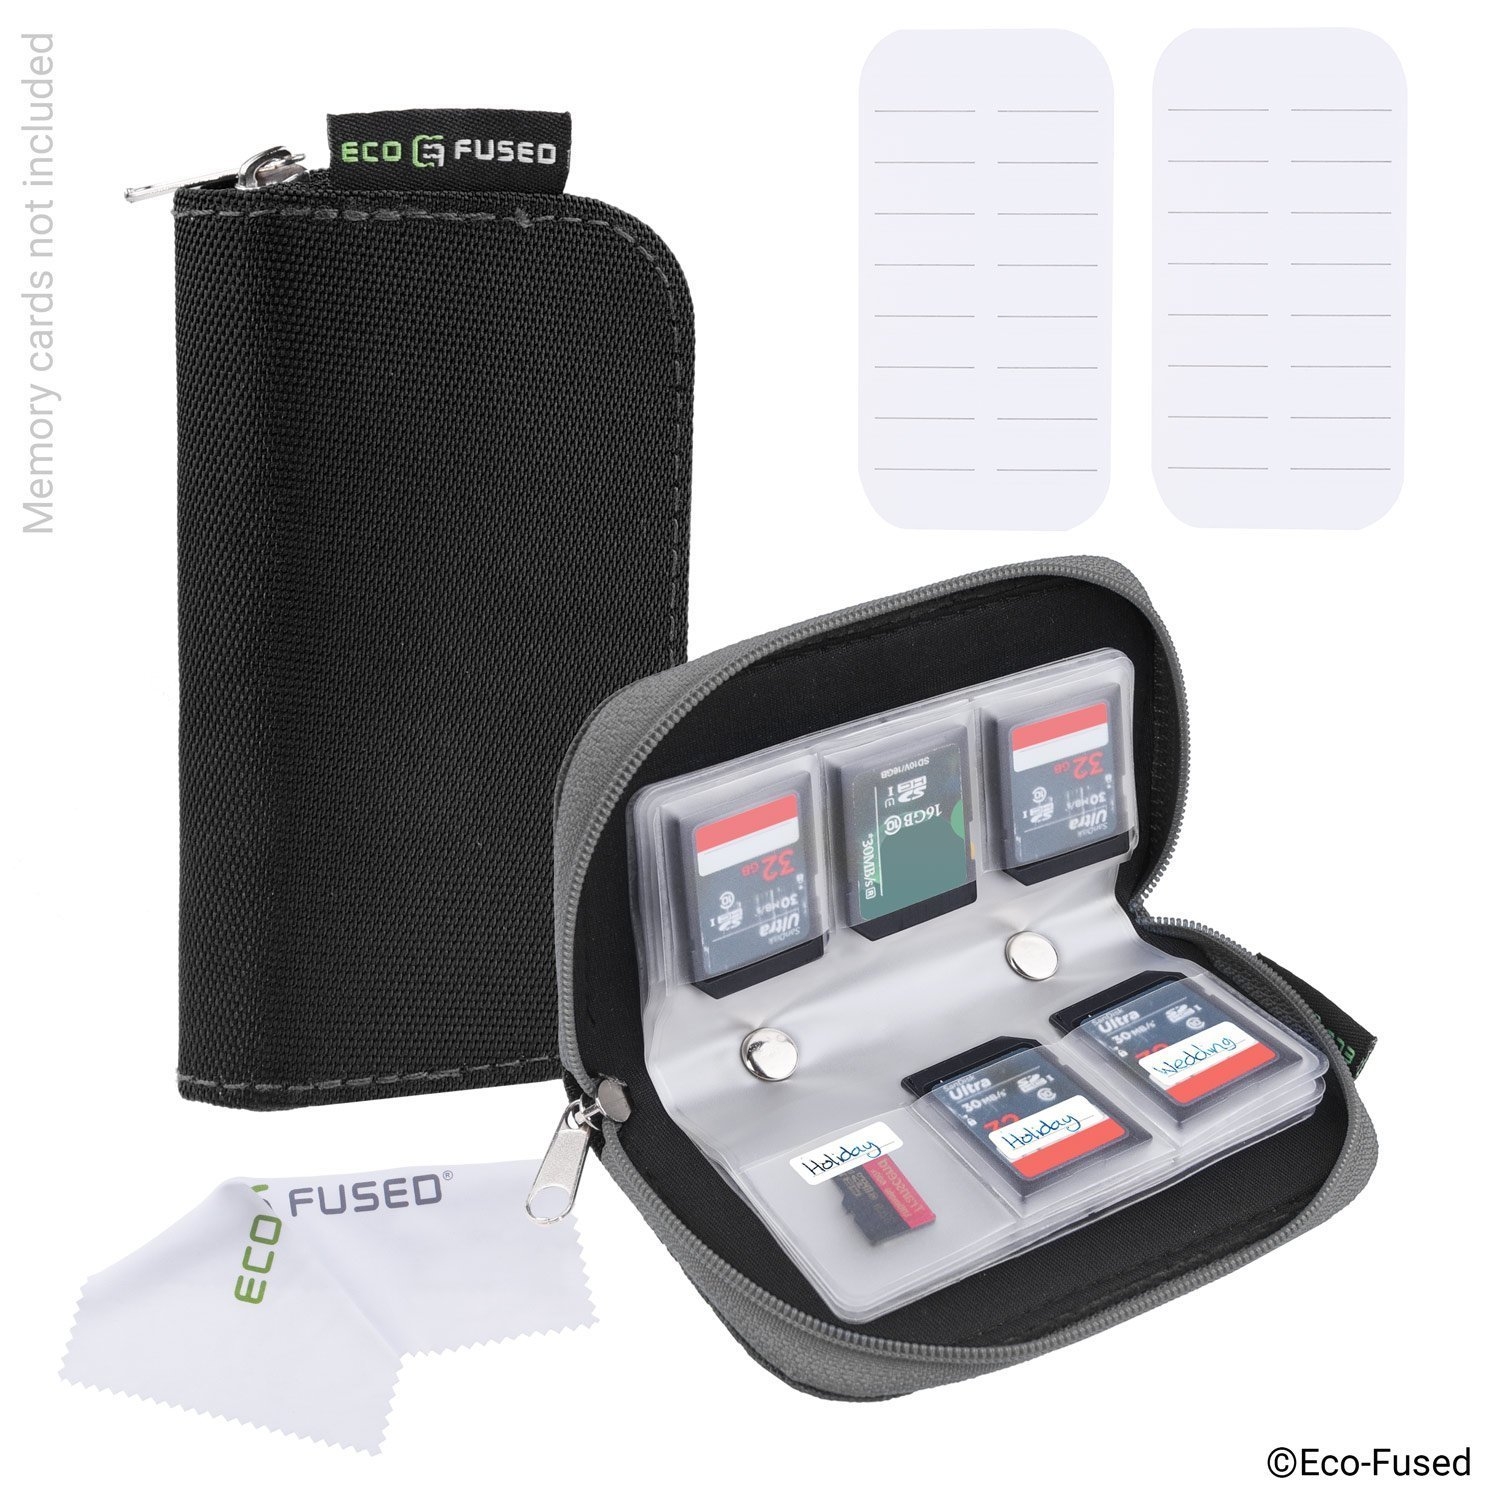 Memory Card Carrying Case - Suitable for SDHC and SD Cards - 8 Pages and 22 Slots - ECO-FUSED Microfiber Cleaning Cloth Included Mmo-PNSPH-329625241